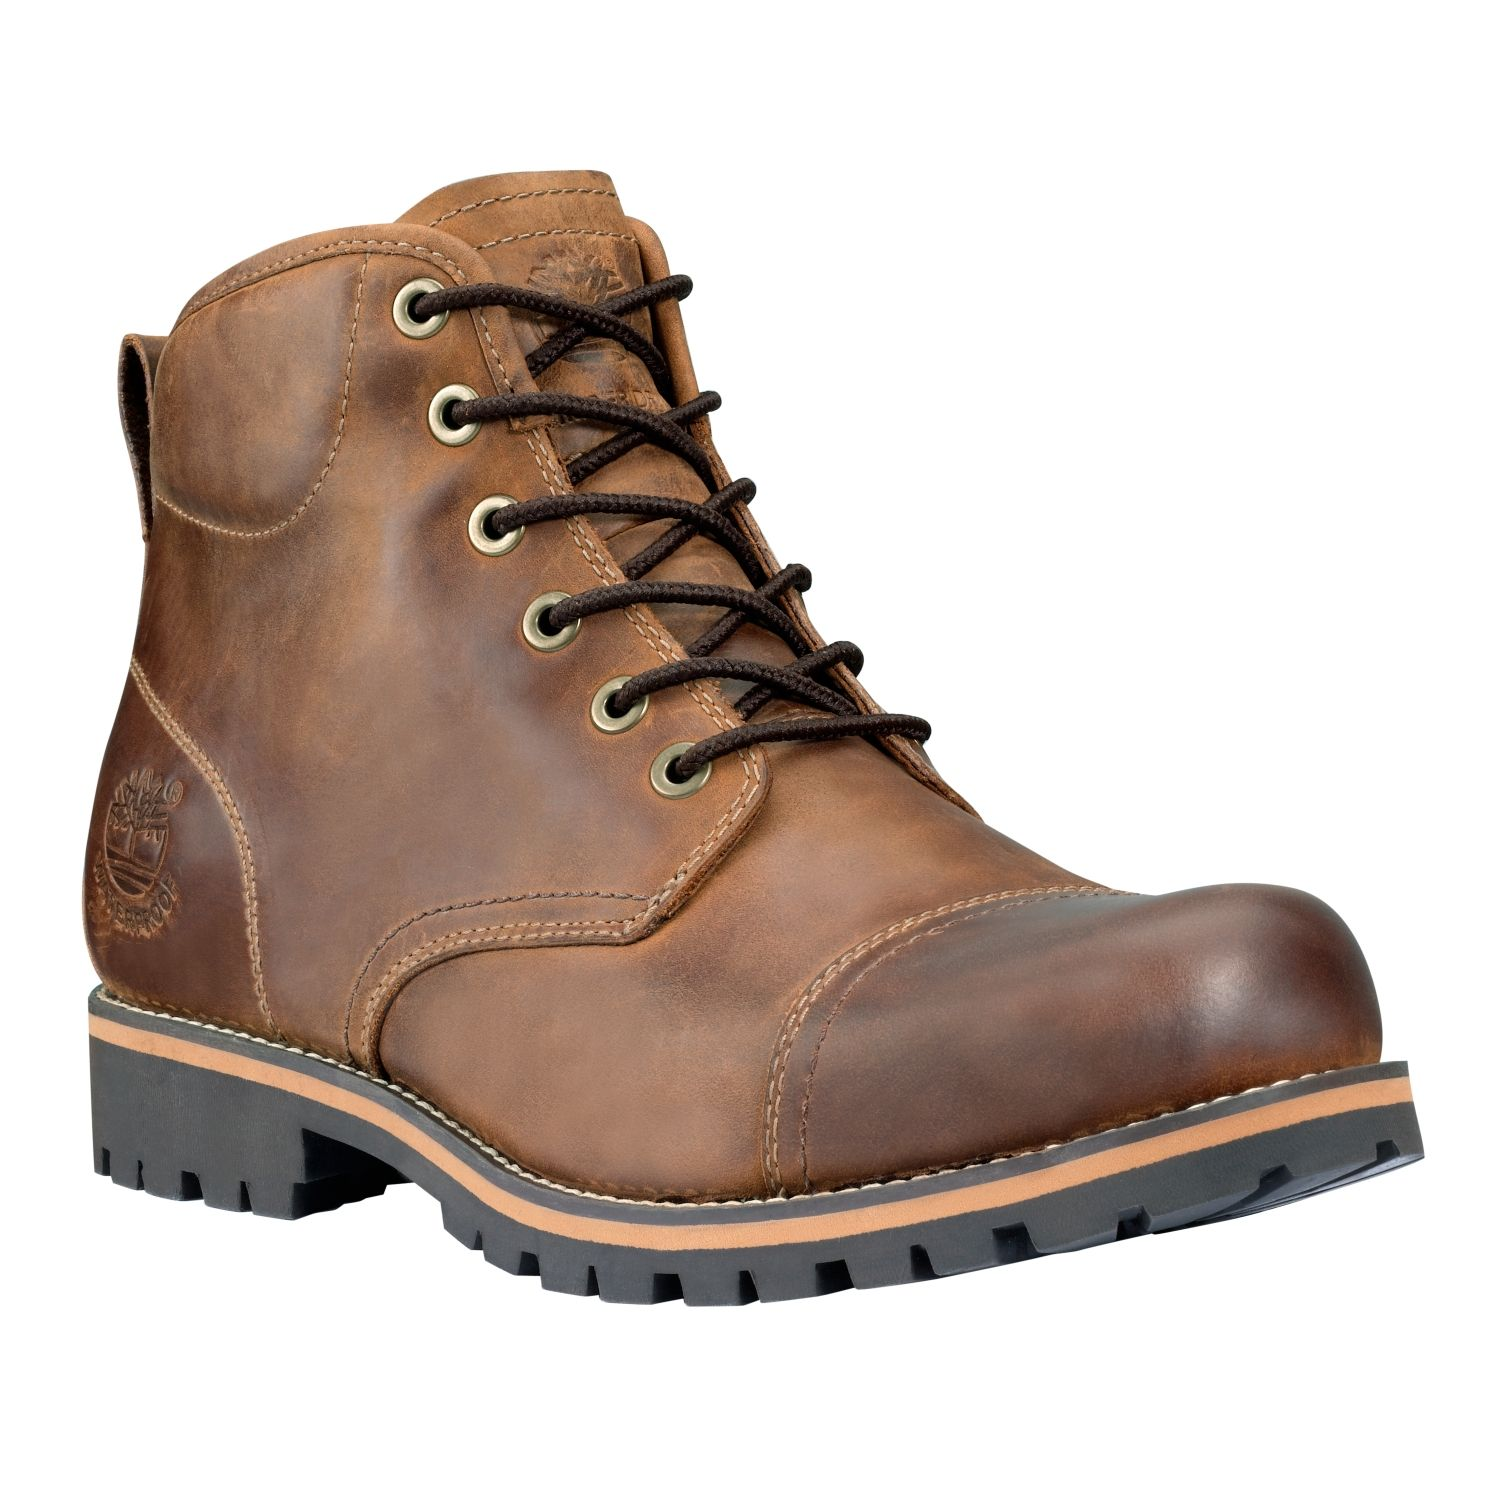 Timberland Men's Earthkeepers® Rugged Cap Toe Waterproof